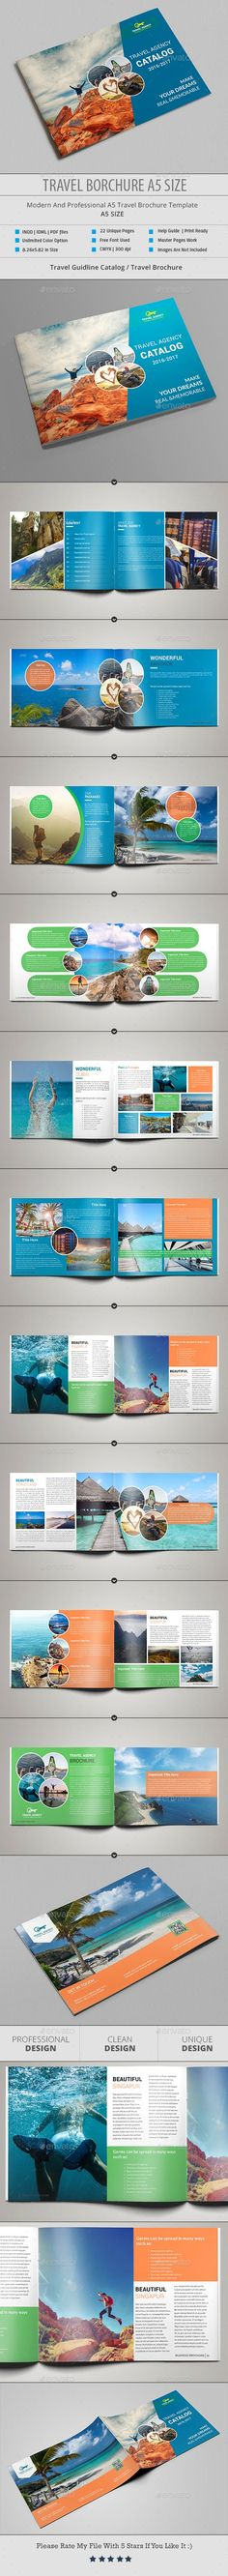 178 Best Travel Brochure Template images in 2019 | Travel